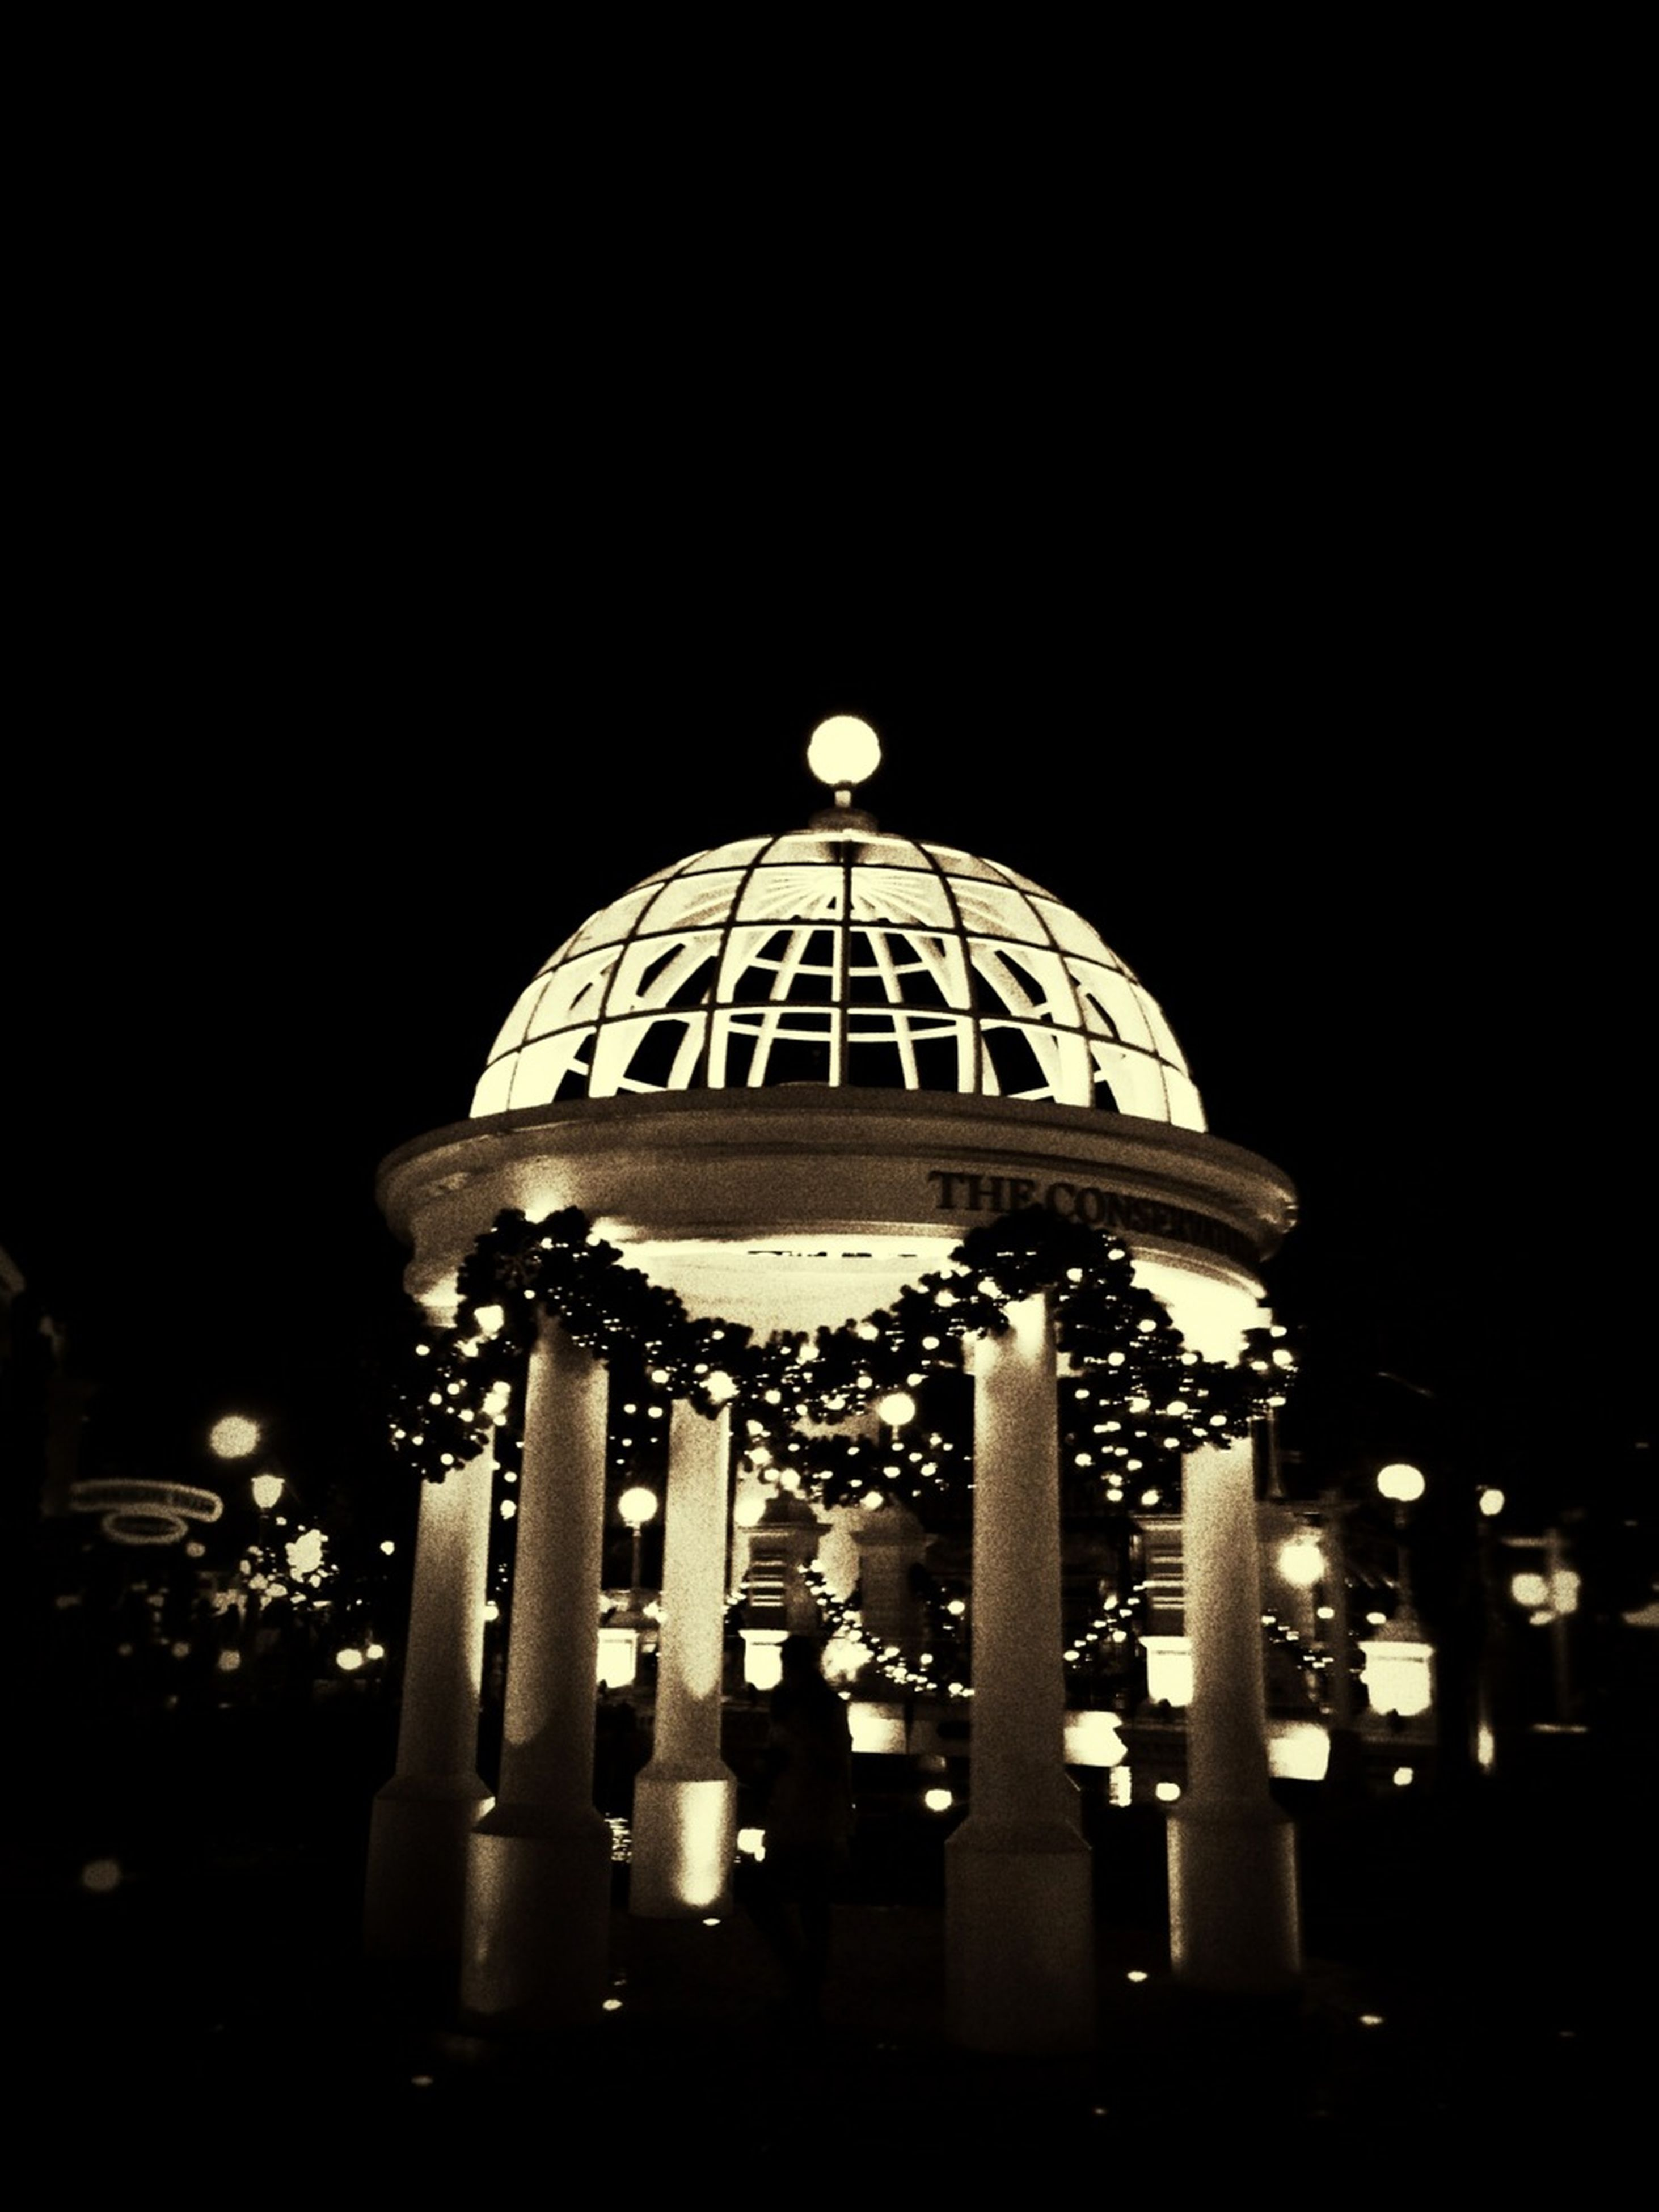 night, built structure, architecture, dome, low angle view, illuminated, religion, place of worship, spirituality, clear sky, building exterior, copy space, famous place, travel destinations, tourism, international landmark, no people, travel, church